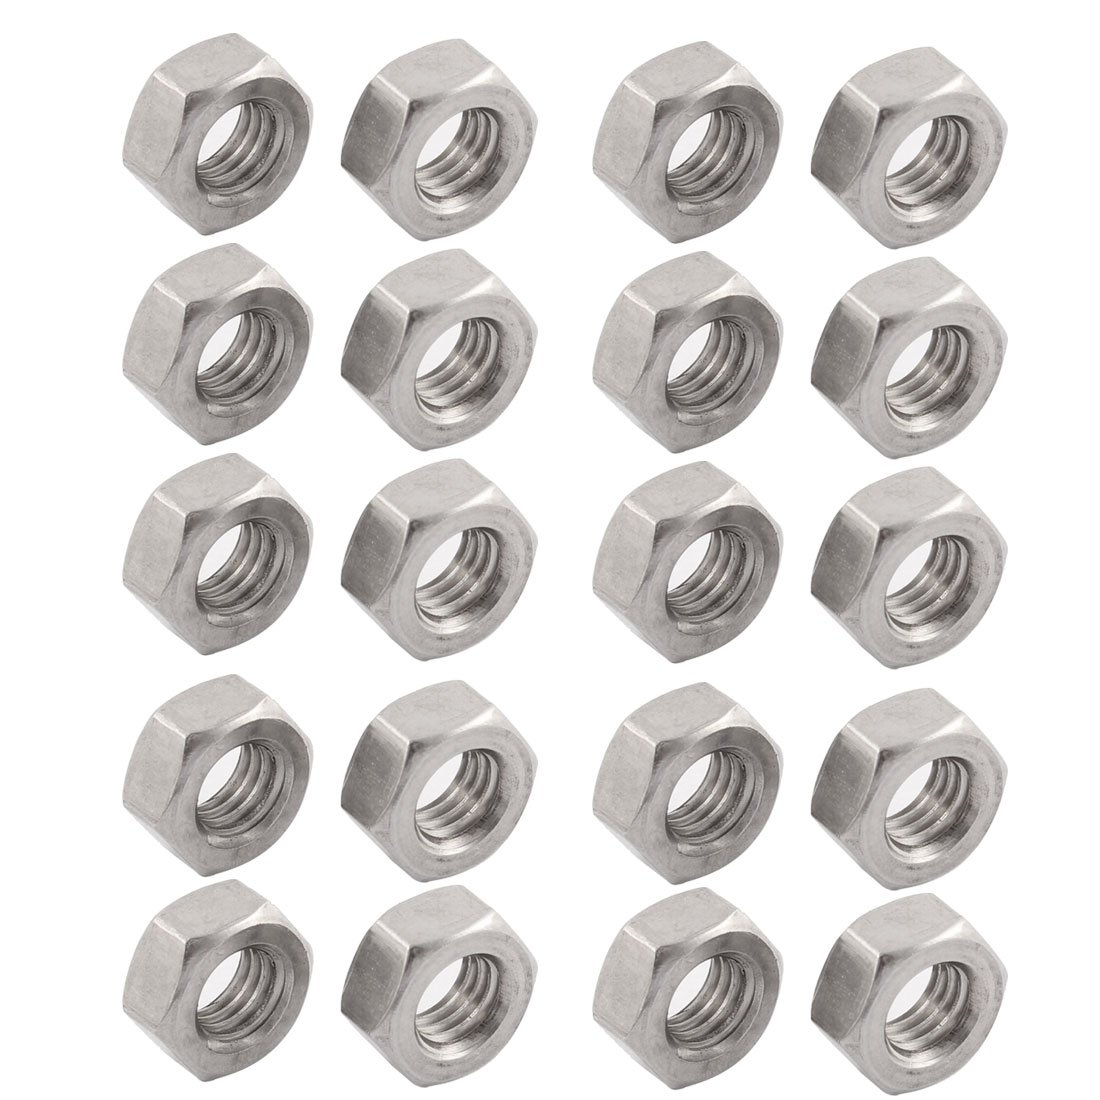 Kegco 6X-HEXNUT-SS Stainless Steel Coupling Hex Nut